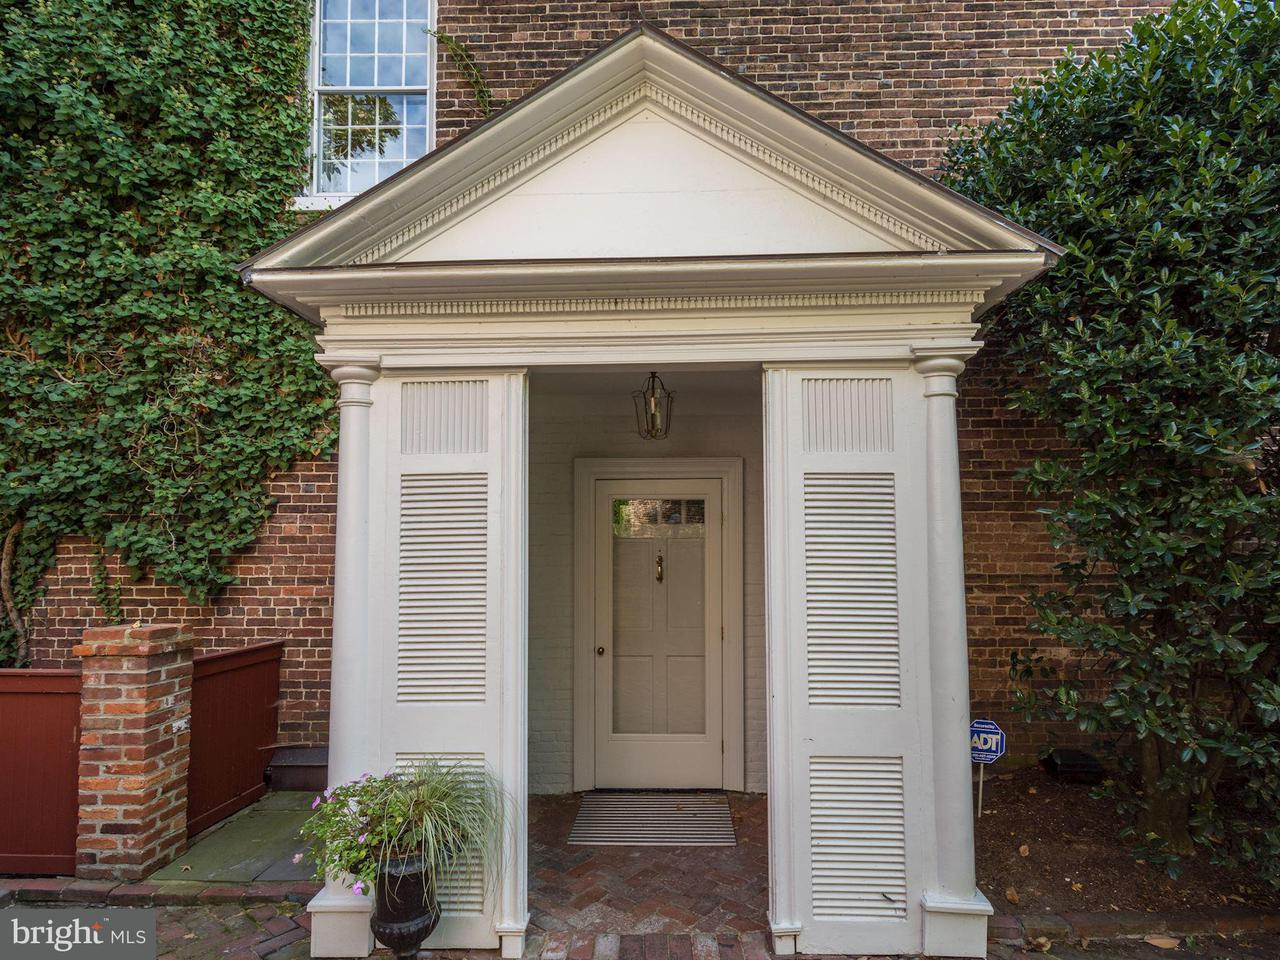 Additional photo for property listing at 224 Lee St S 224 Lee St S Alexandria, Virginia 22314 United States